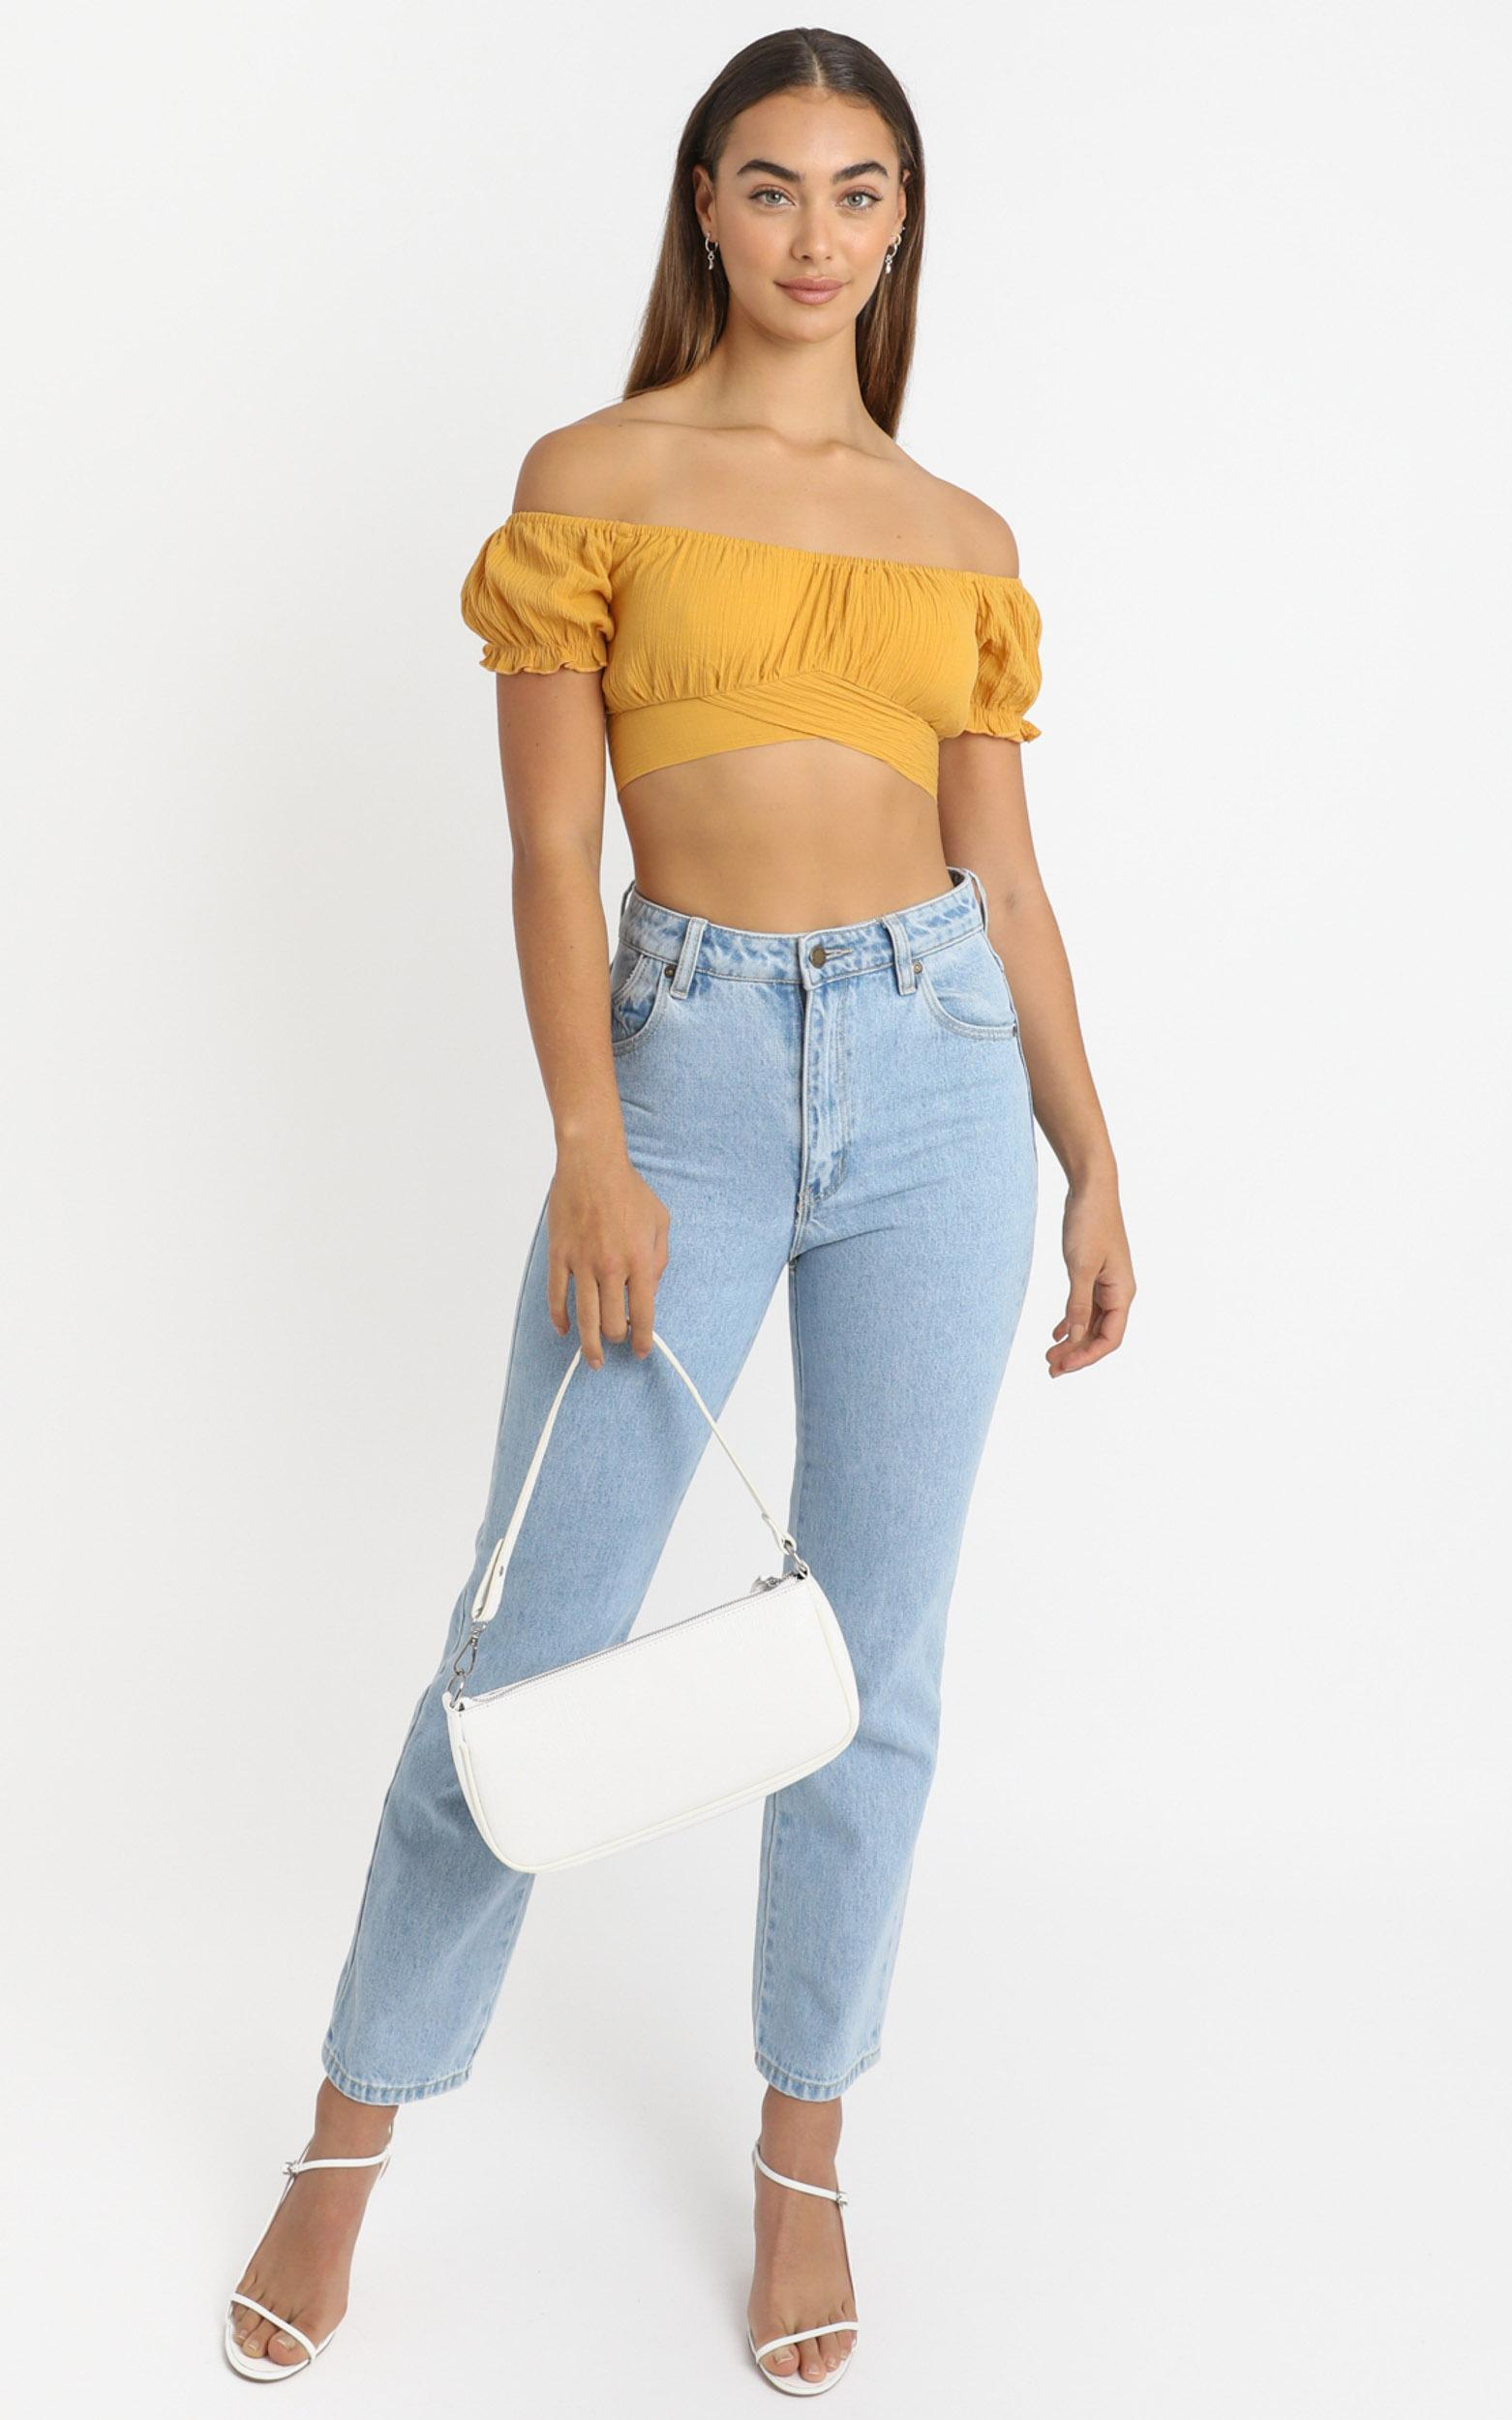 I Know You Top in mustard linen look - 6 (XS), Yellow, hi-res image number null